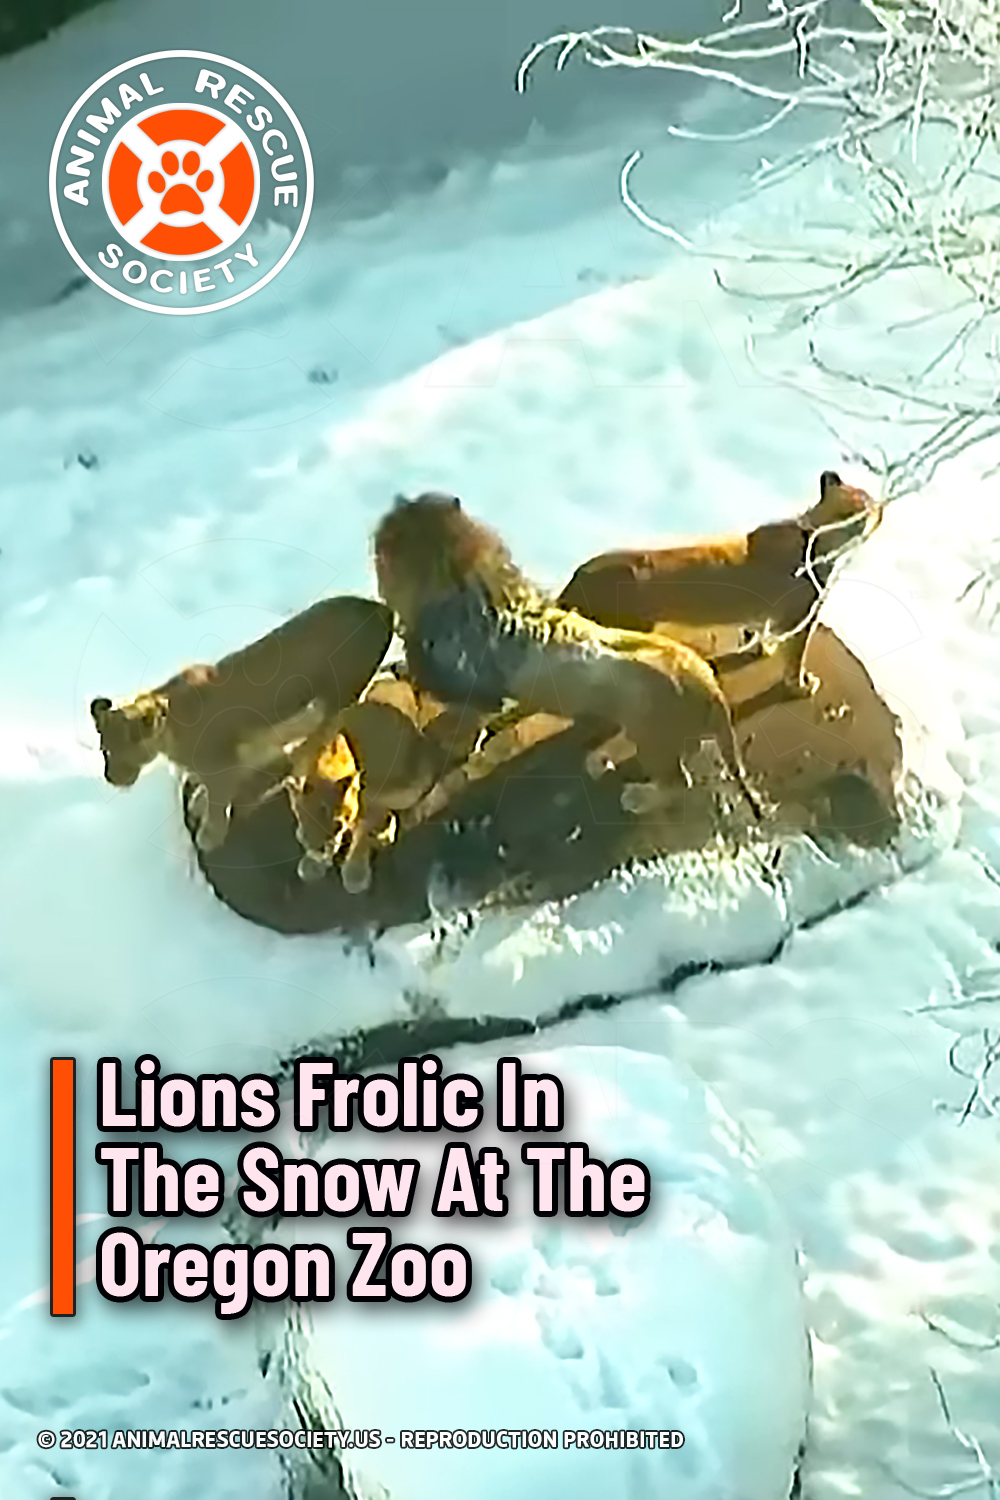 Lions Frolic In The Snow At The Oregon Zoo